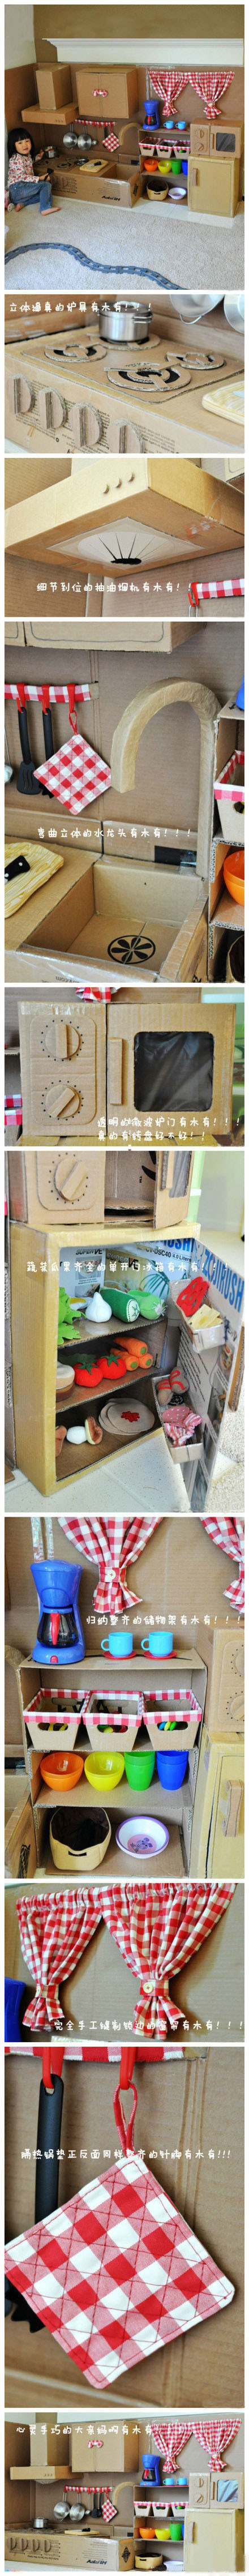 This is a mother handmade cardboard version of mini kitchen, cute